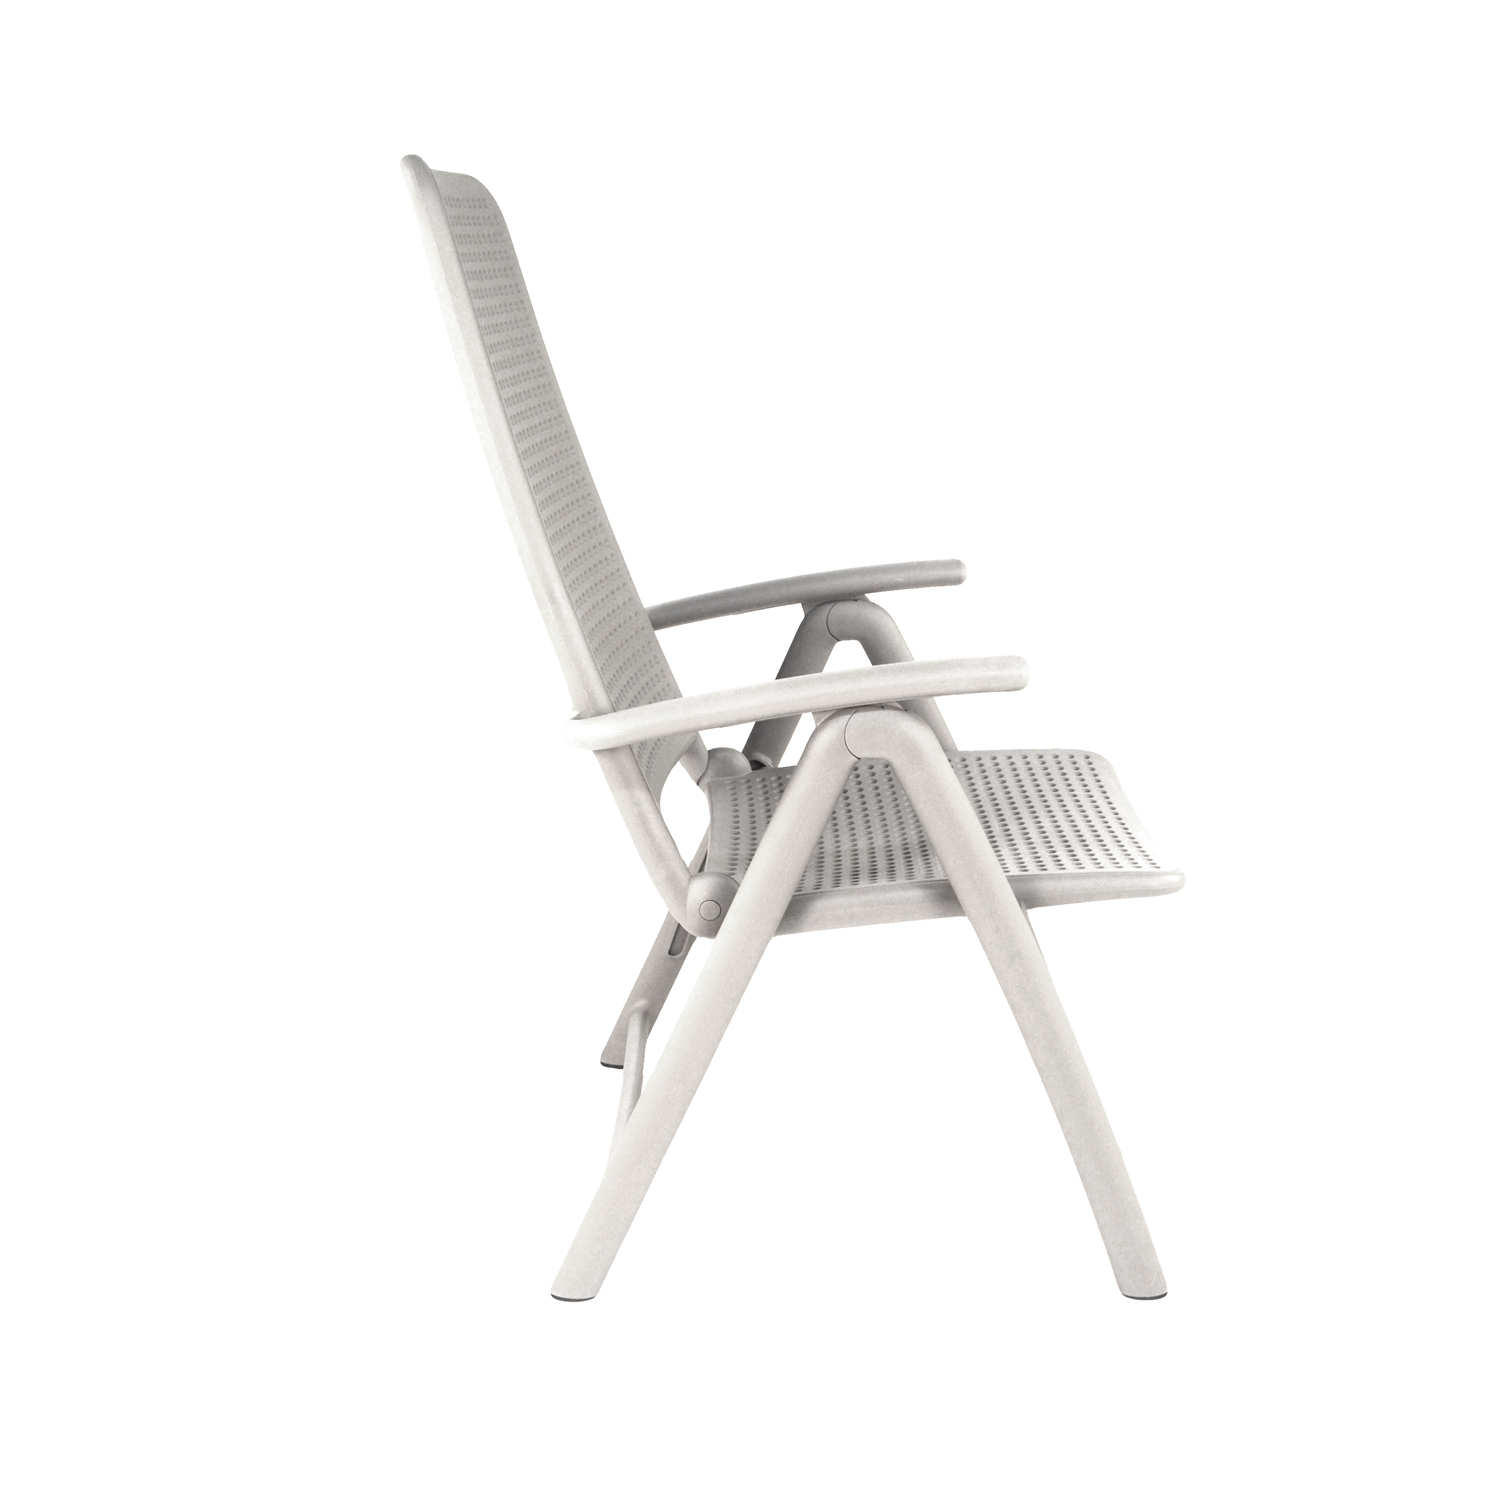 Darsena Chair reclined position 2